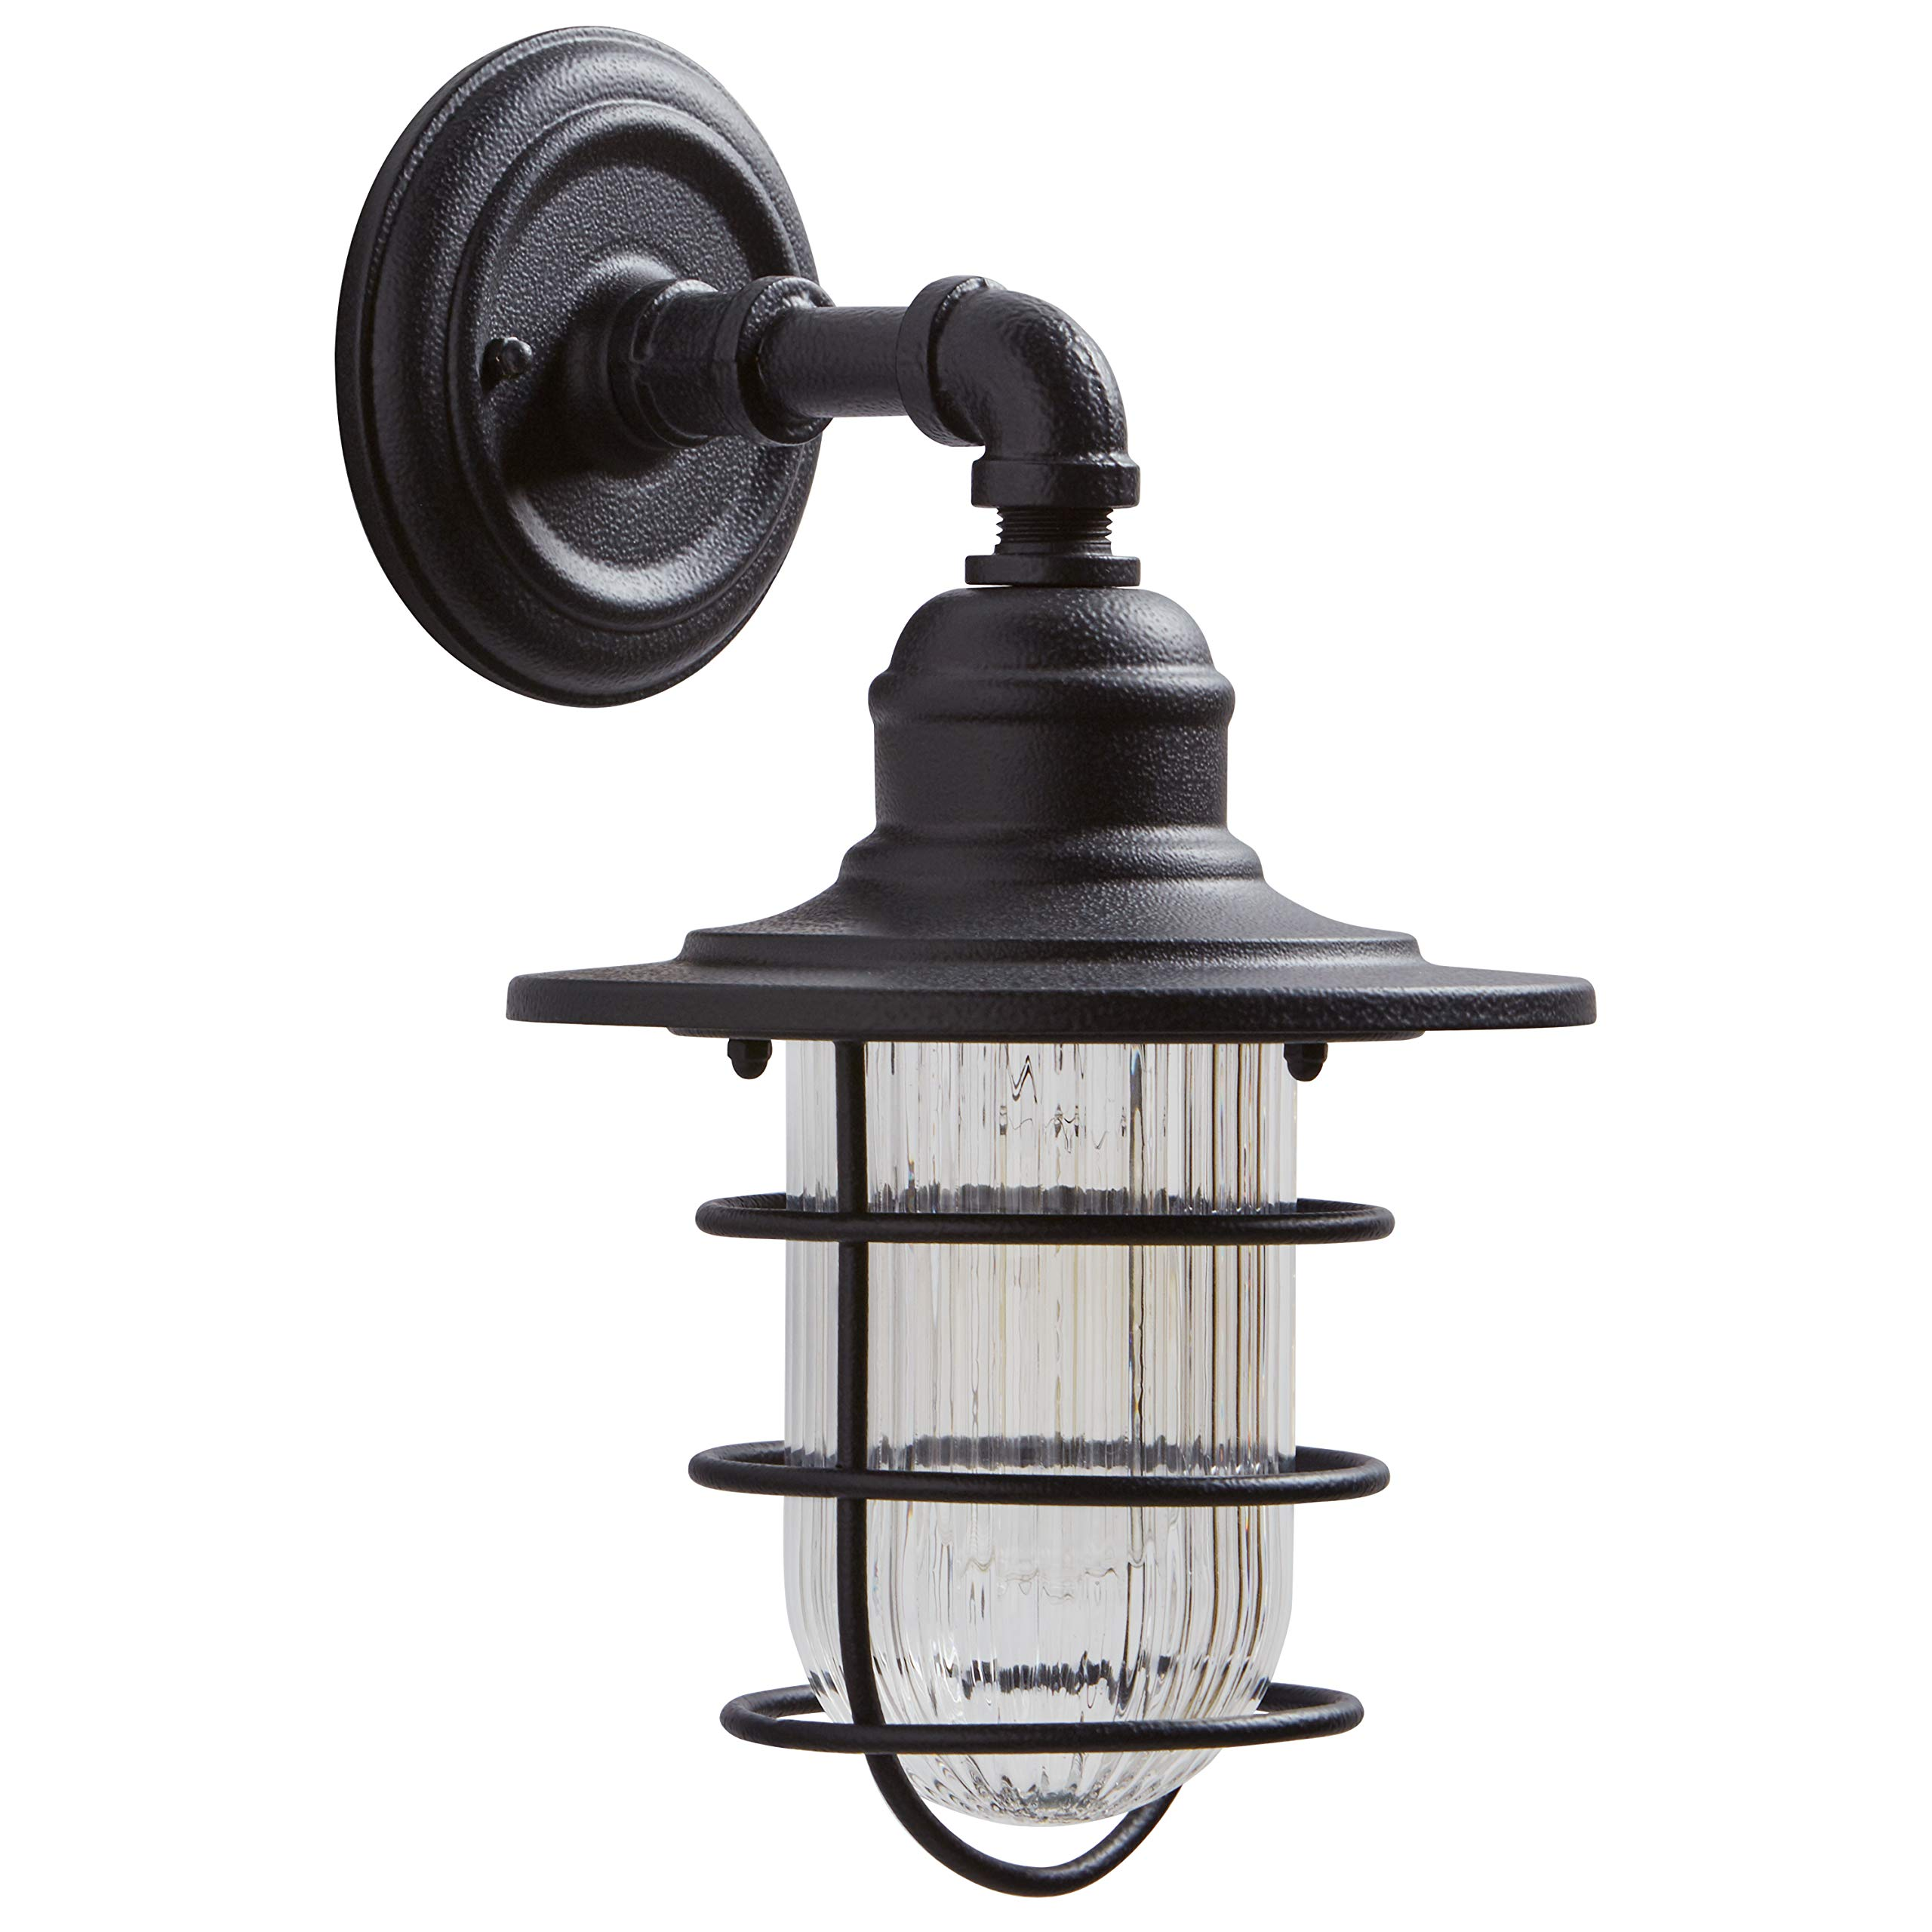 Amazon Brand – Stone & Beam Industrial Farmhouse Outdoor Wall Sconce Fixture with Light Bulb - 7.29 x 8.15 x 12.51 Inches, Black Iron